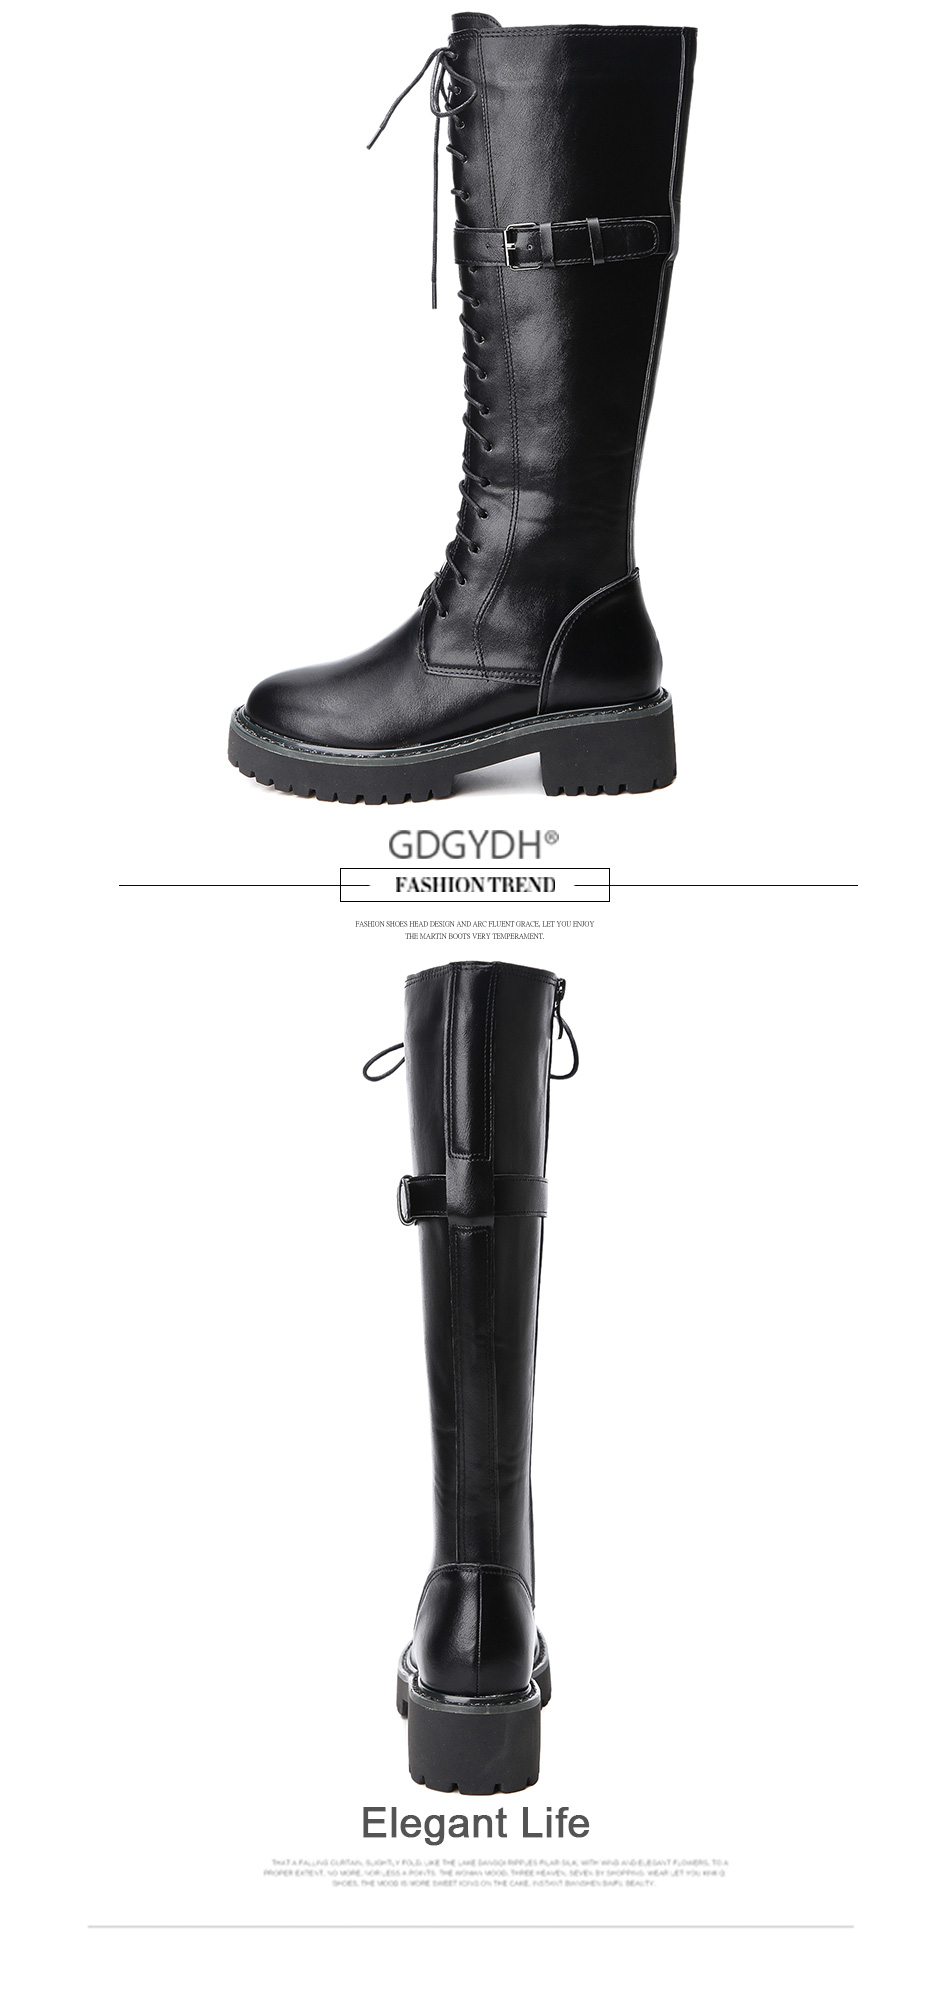 lace-up female buckle boots